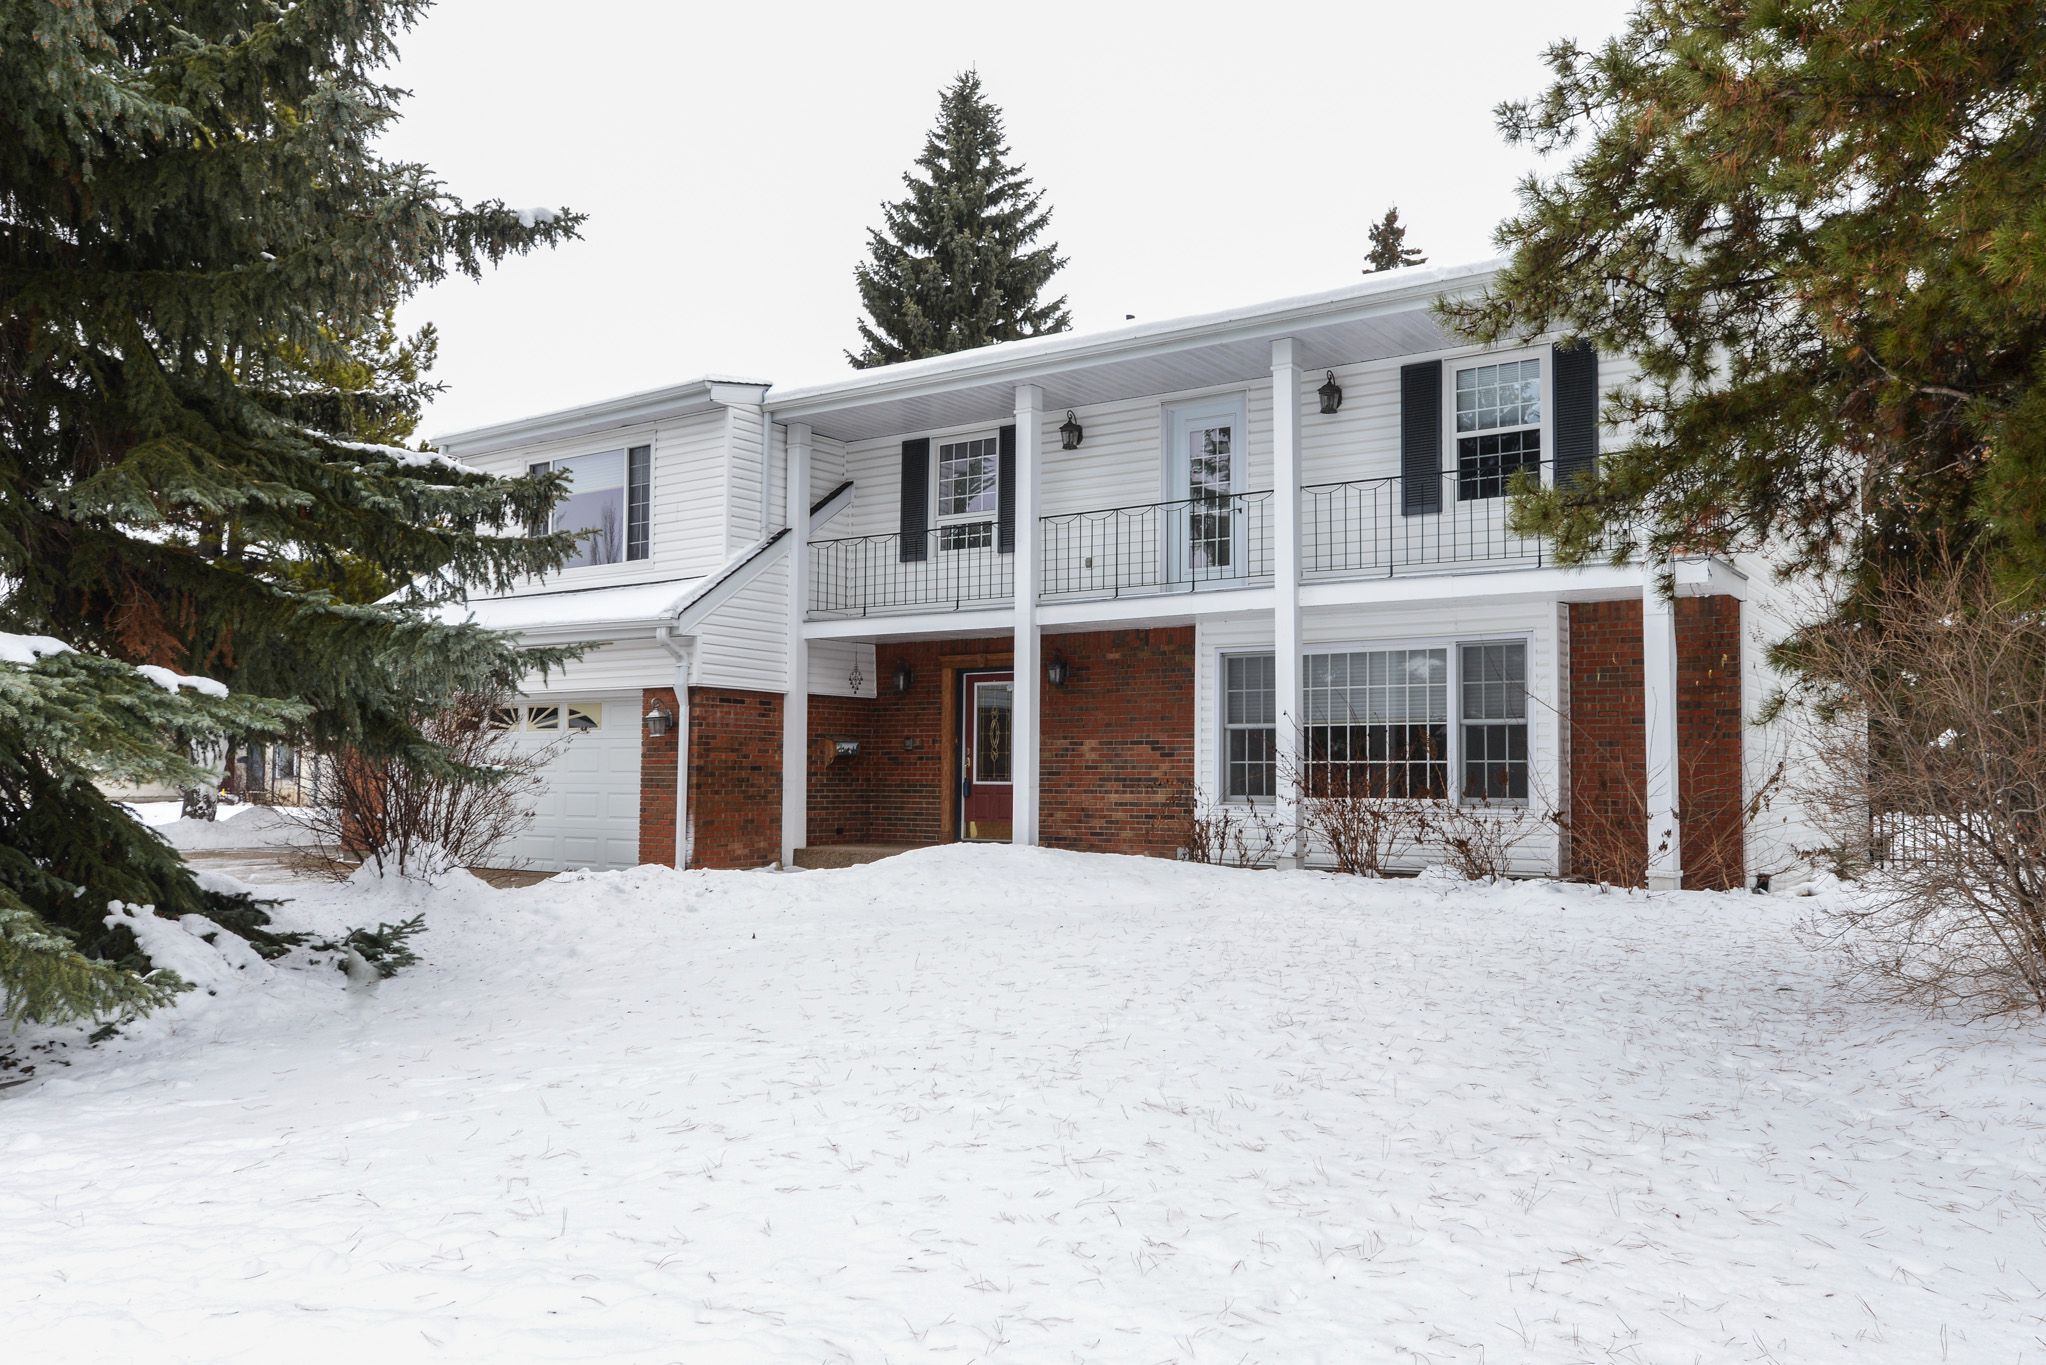 Main Photo: 63 Quesnell crescent in Edmonton: Quesnell Heights House for sale